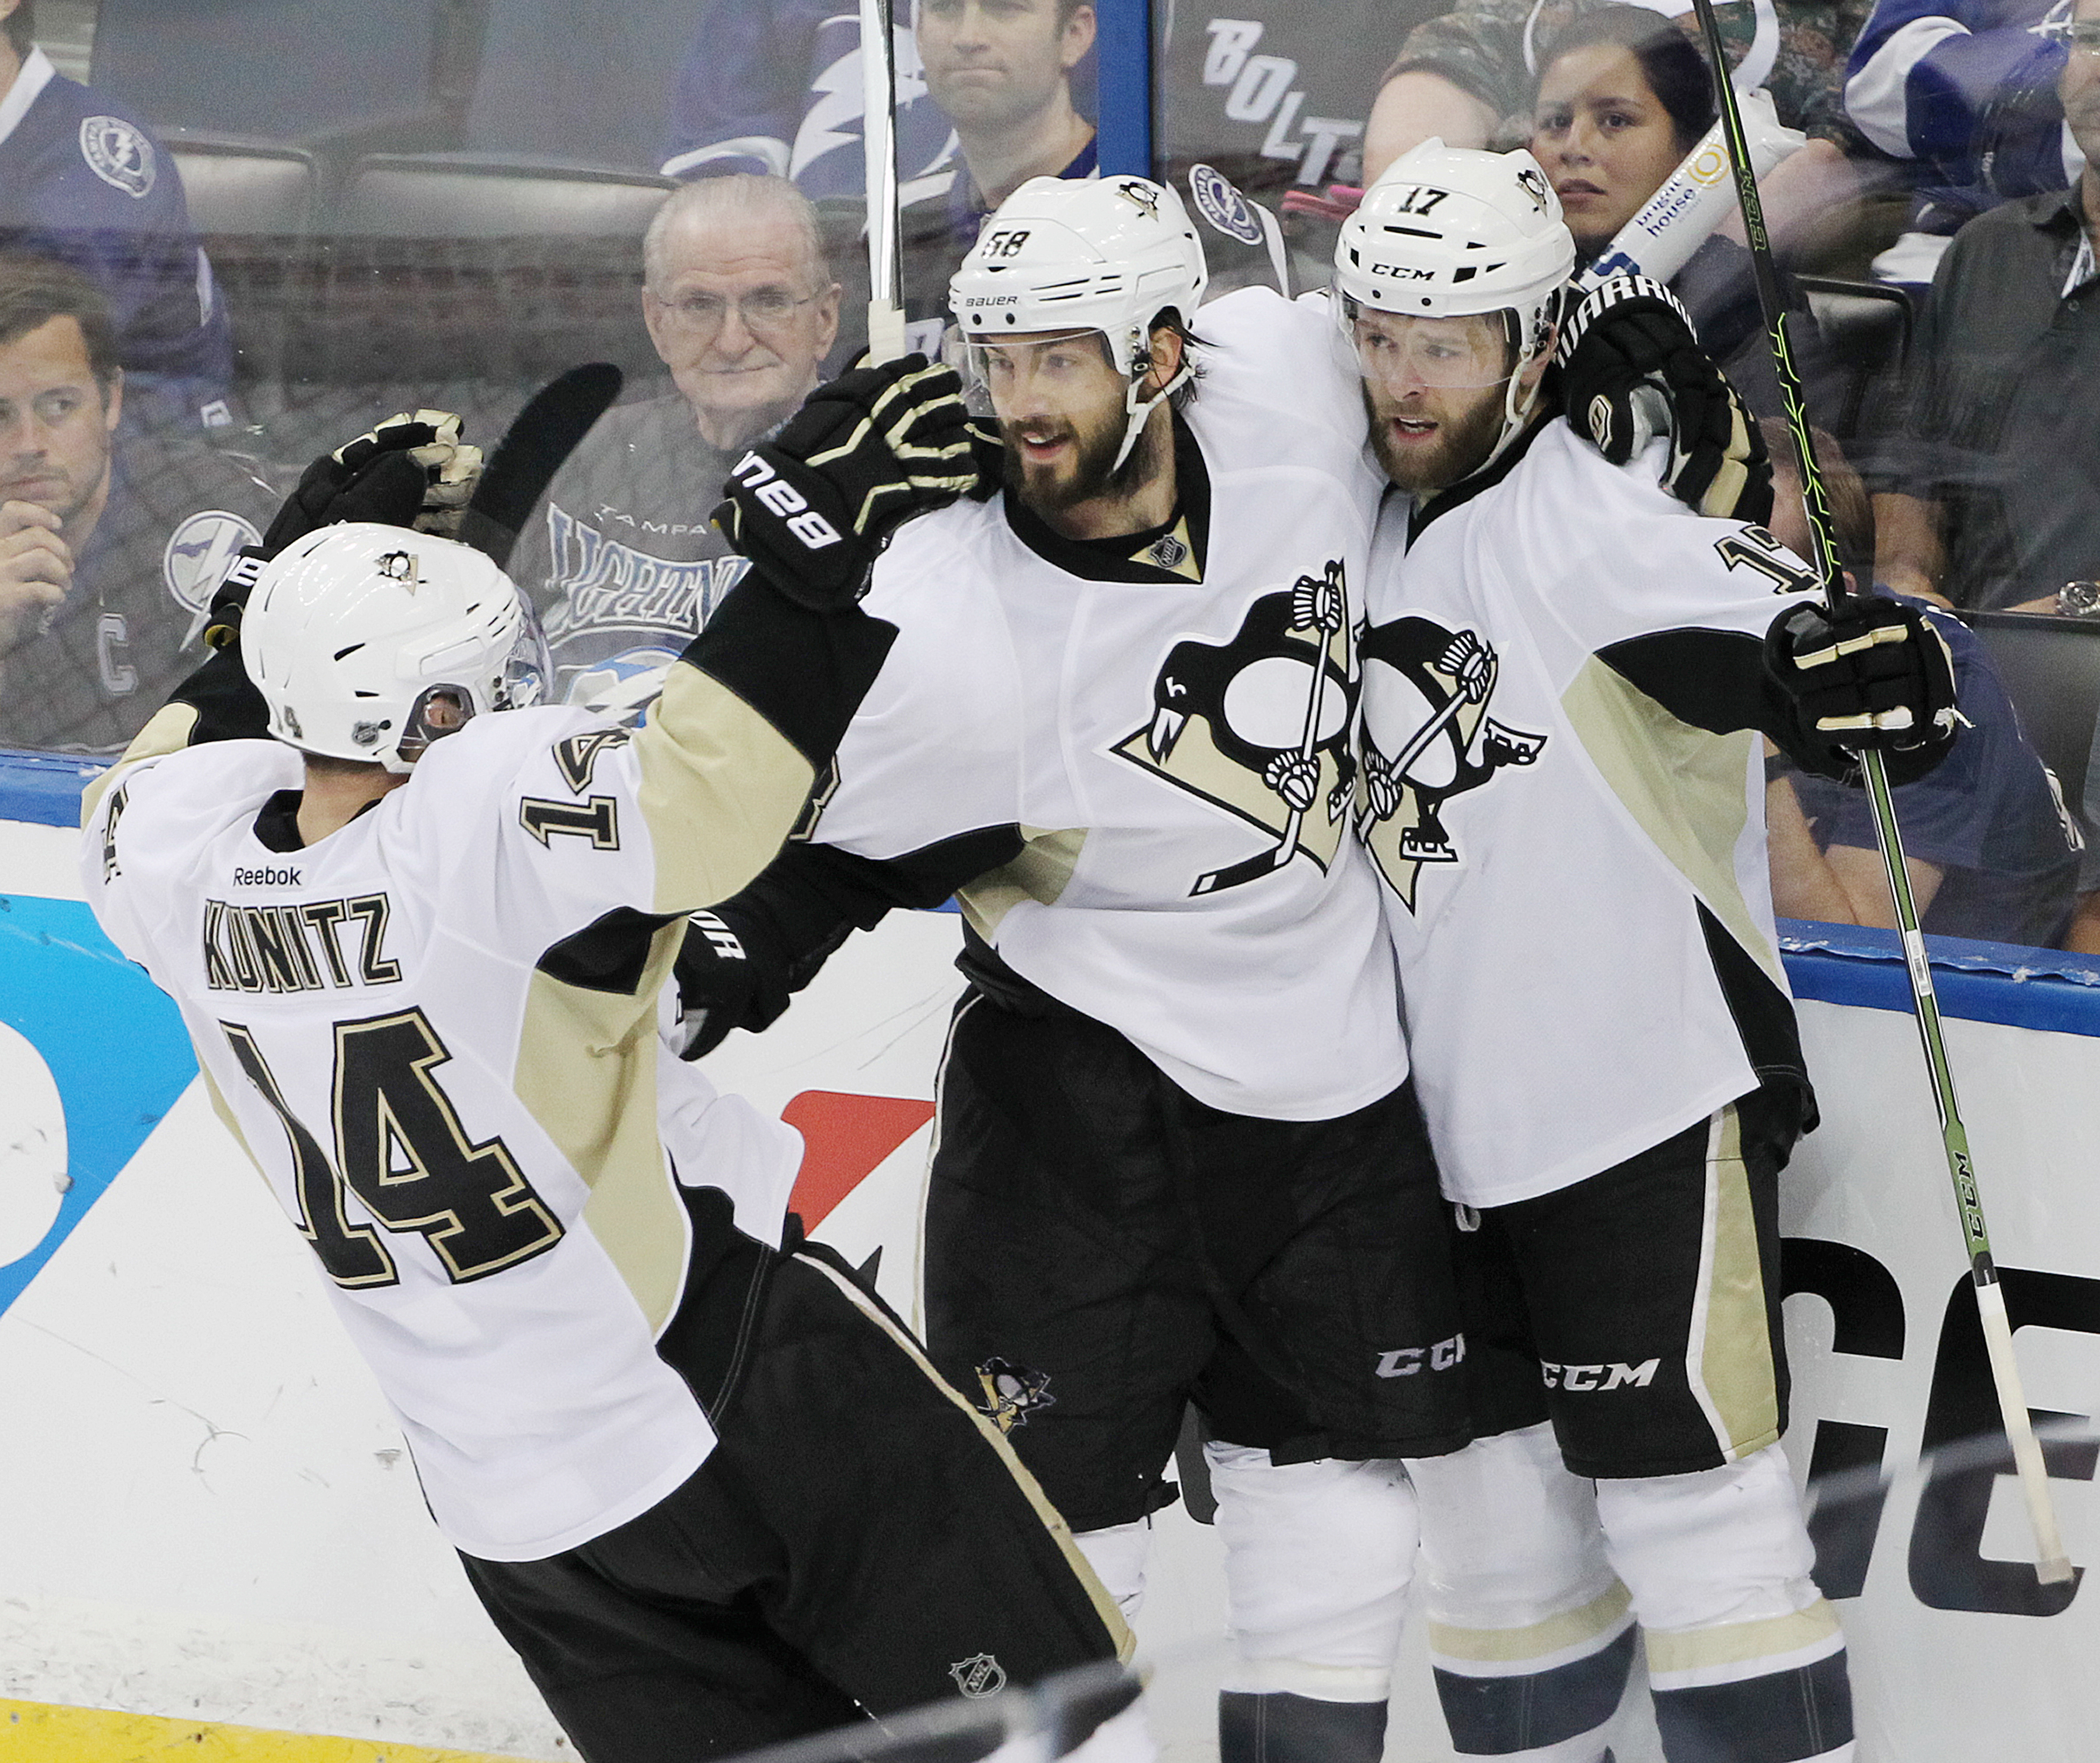 Pittsburgh Penguins defenseman Kris Letang (58) and left wing Chris Kunitz (14) celebrate Bryan Rust's (17) goal during the third period of Game 6 of the NHL hockey Stanley Cup Eastern Conference finals Tuesday, May 24, 2016, in Tampa, Fla. The Penguins d